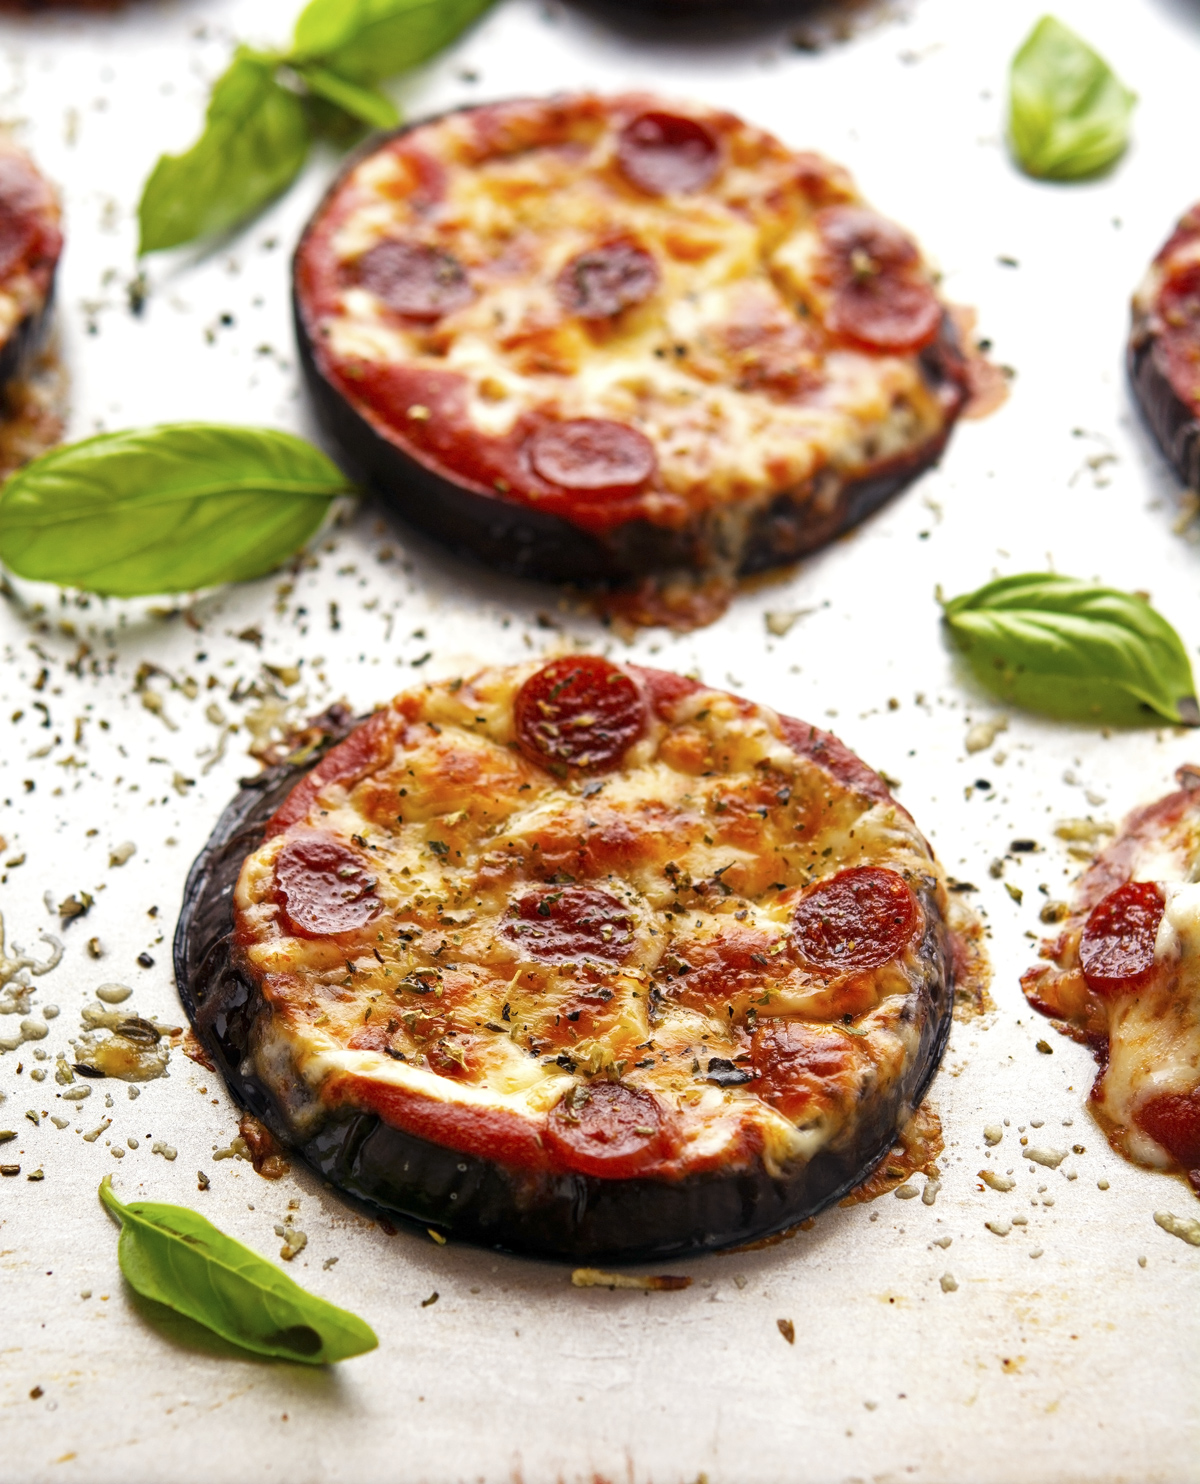 These eggplant pizzas are slices of baked eggplant, topped with ...